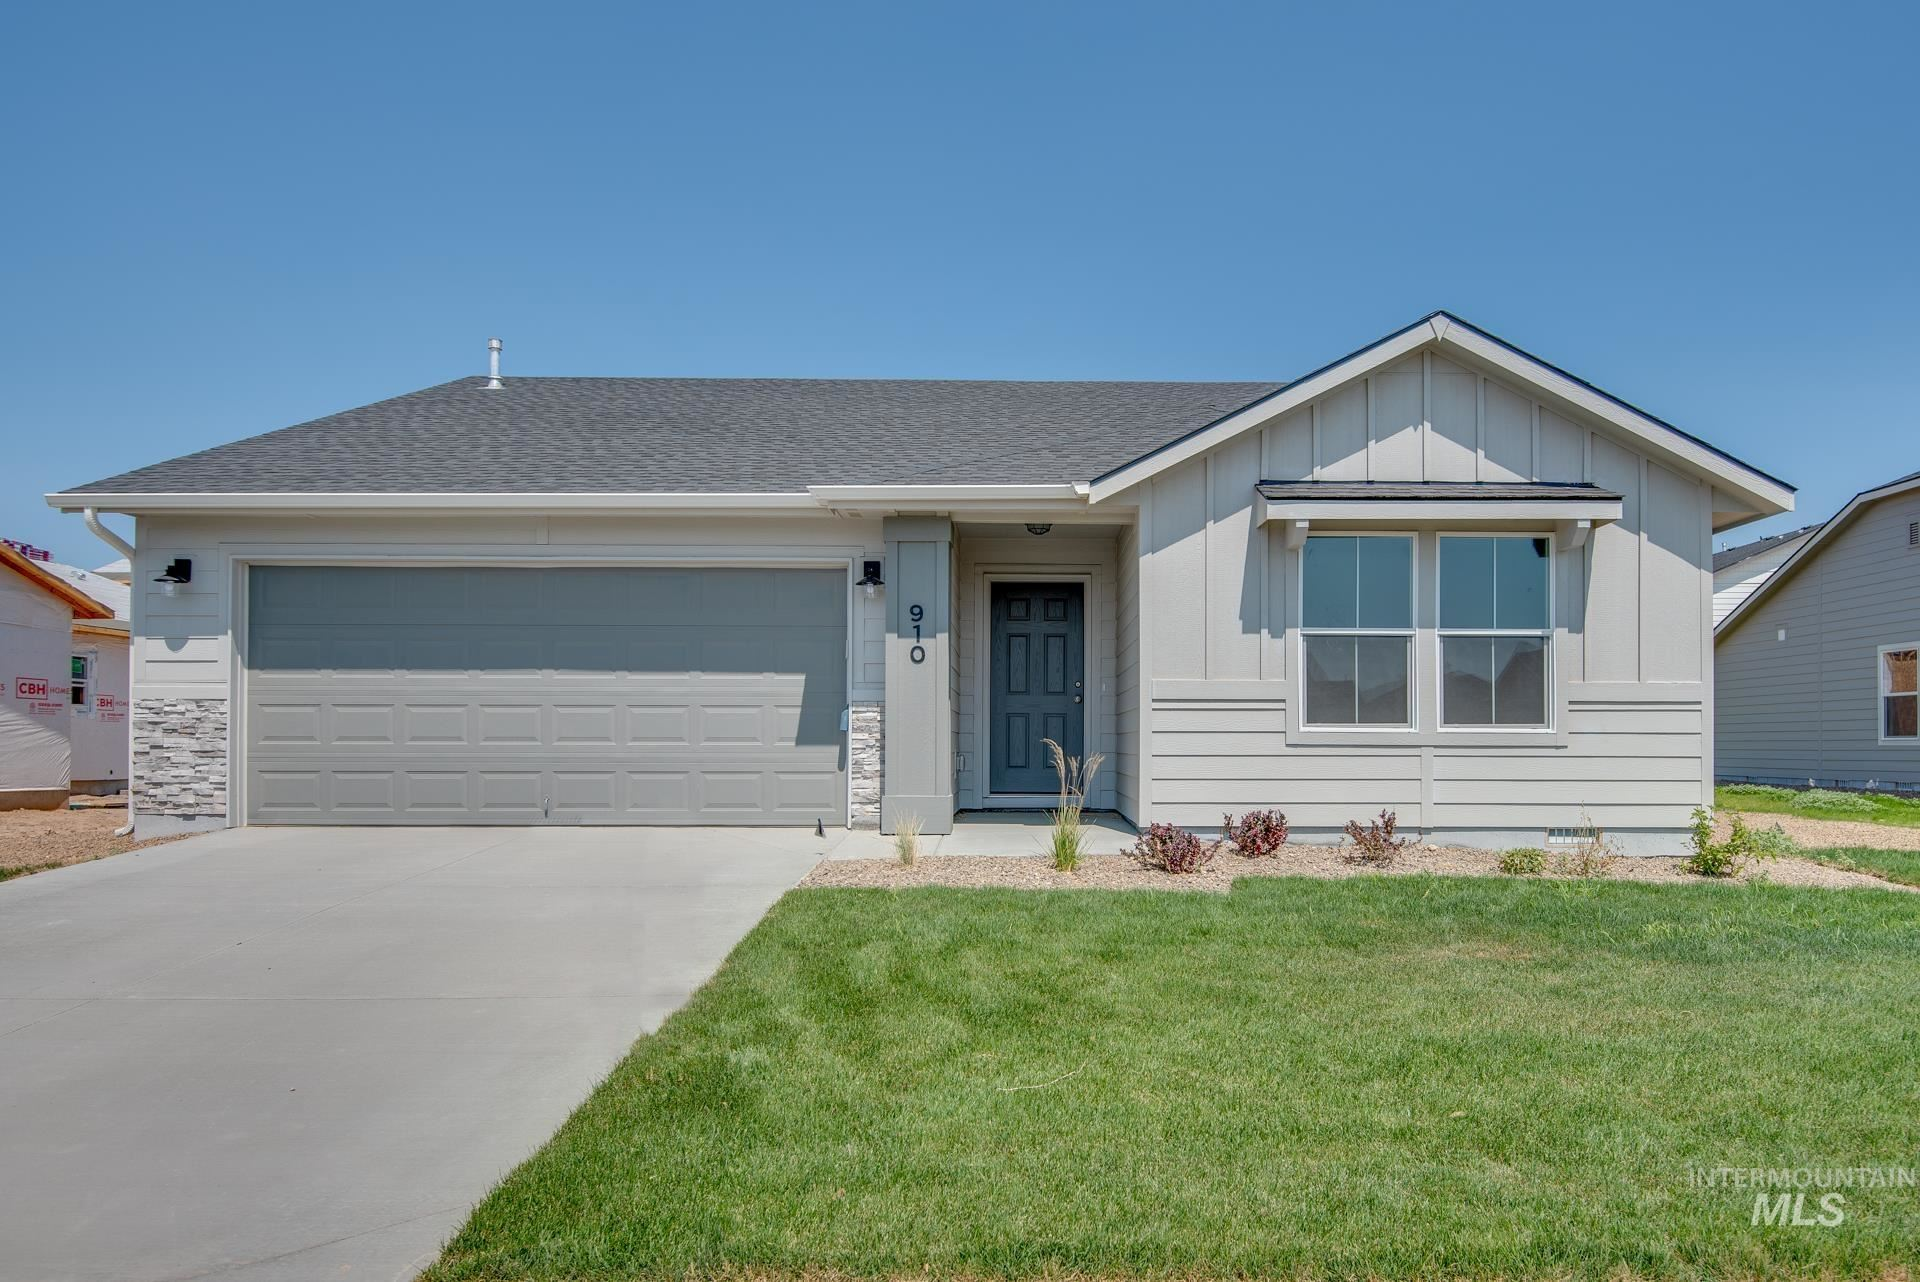 Photo of 910 SW Crested St, Mountain Home, ID 83647 (MLS # 98807223)